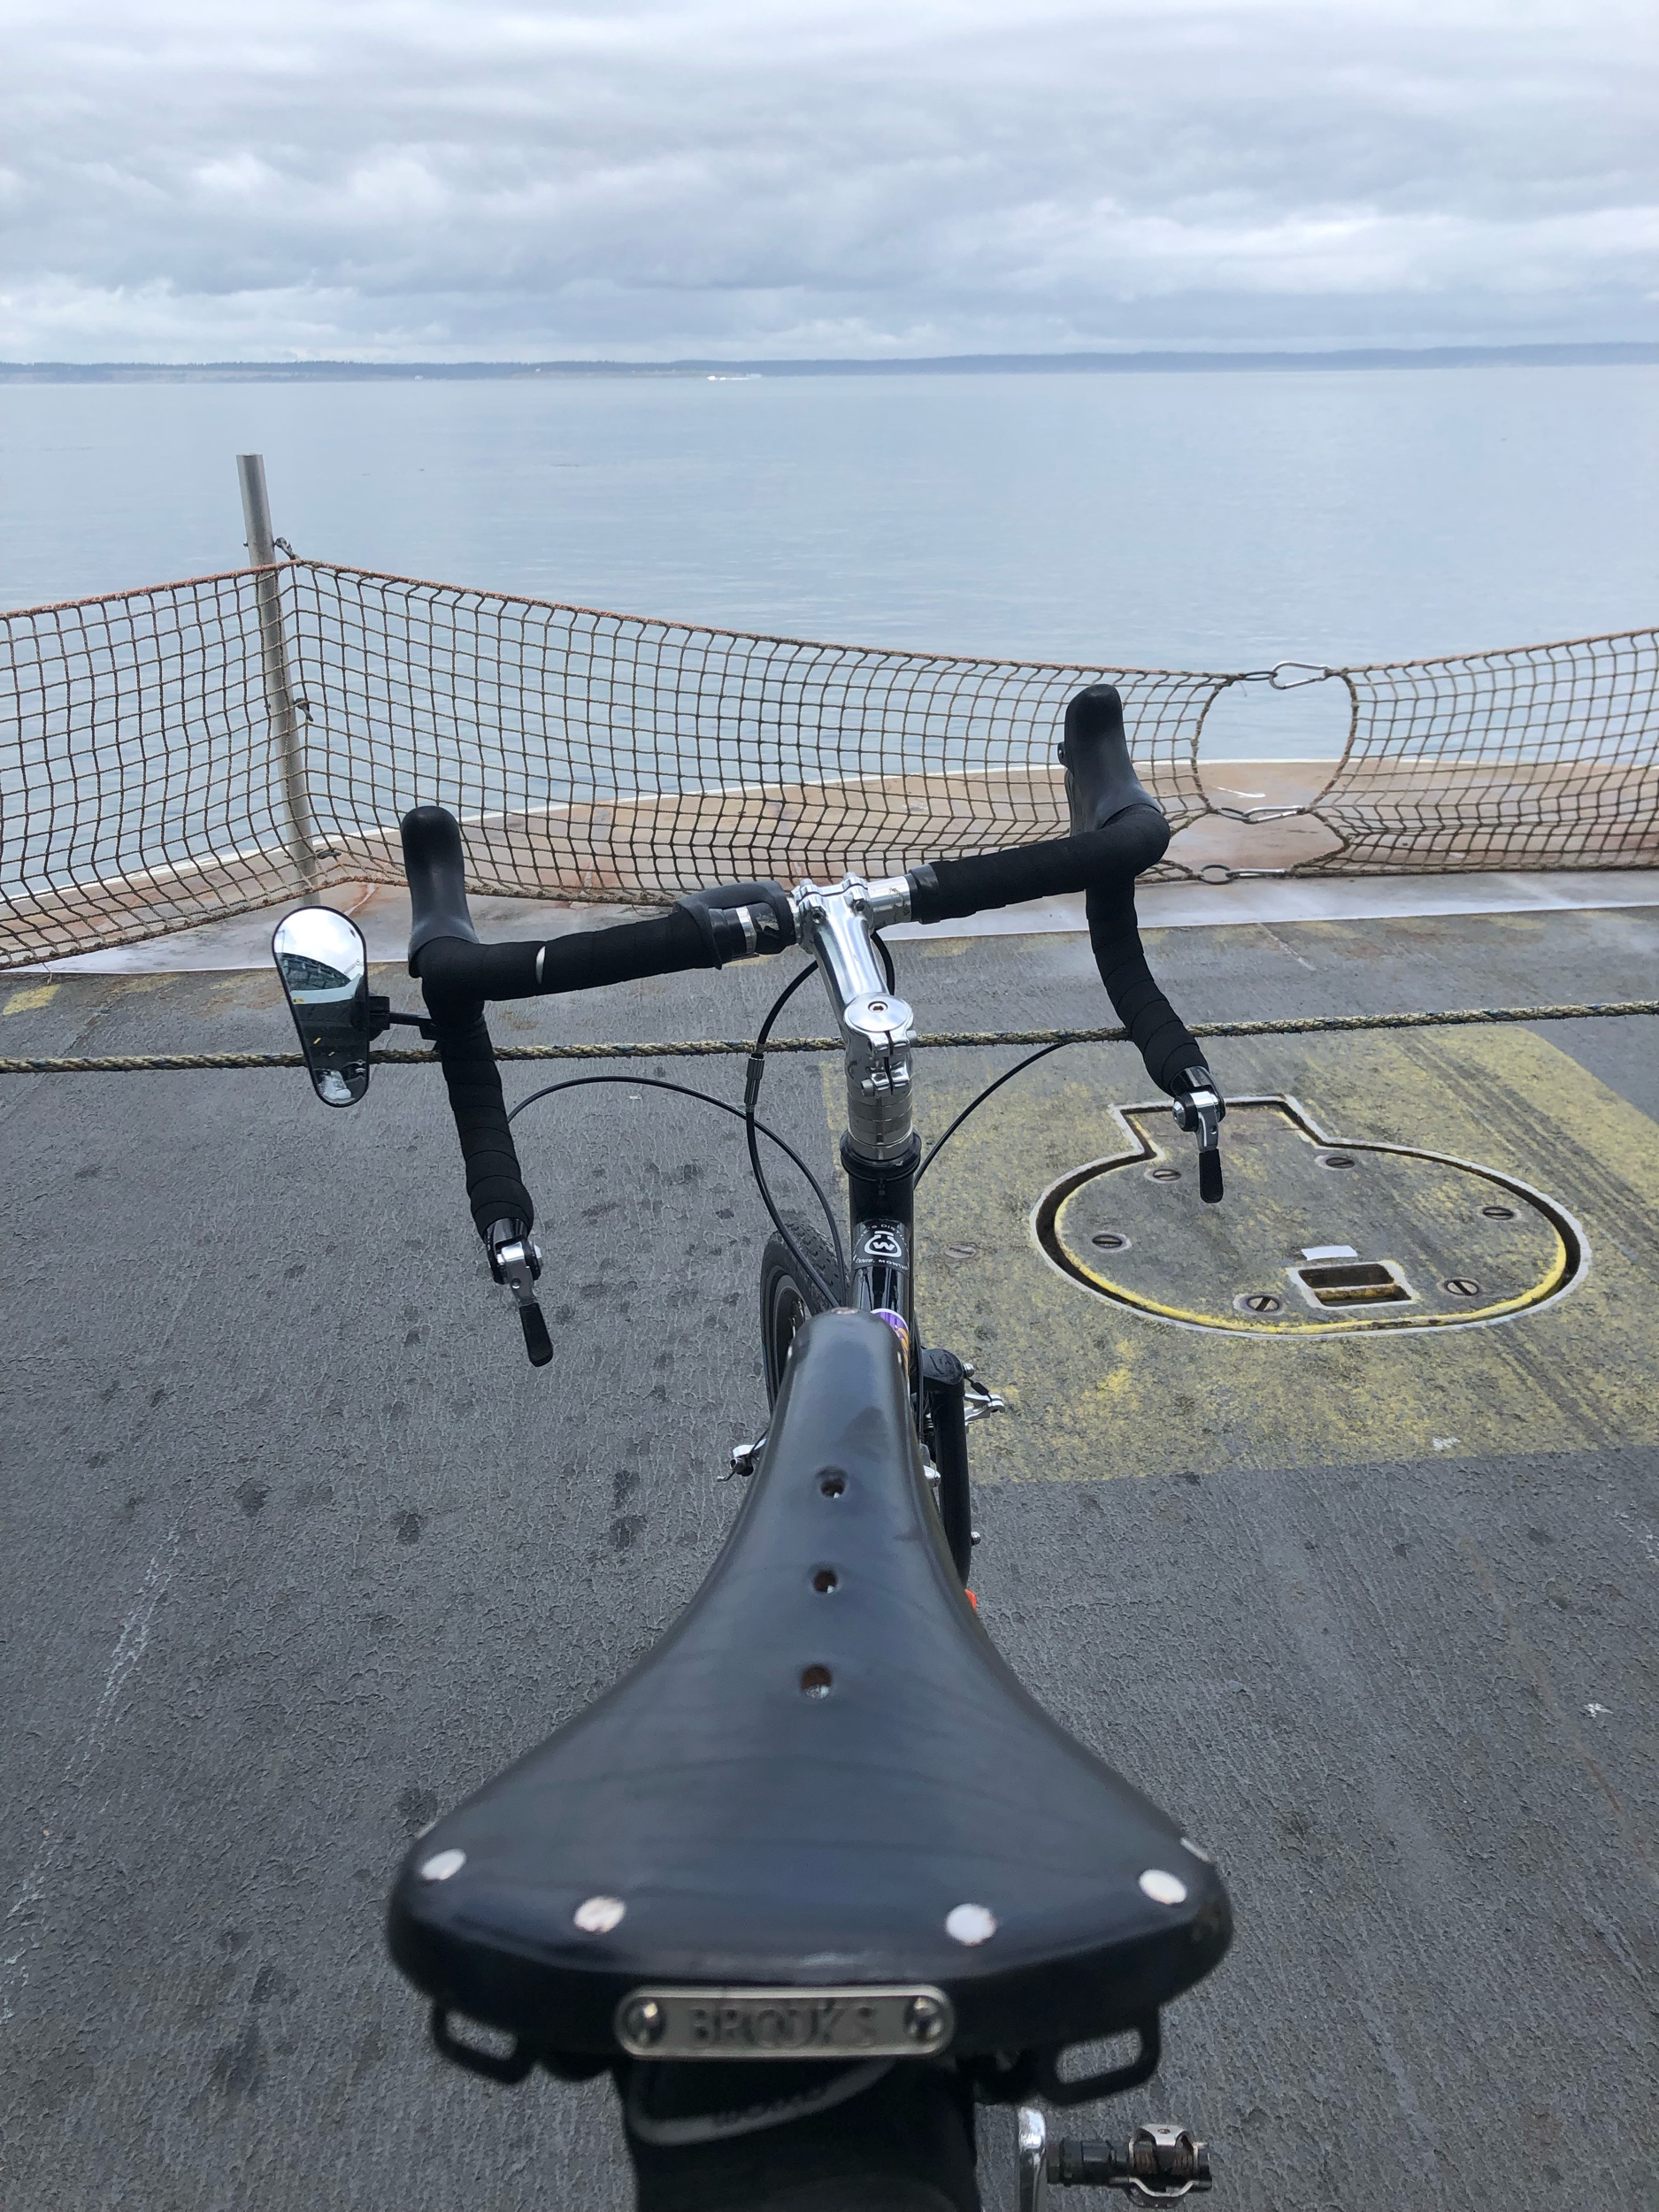 Ferry from Port Townsend to Coupeville